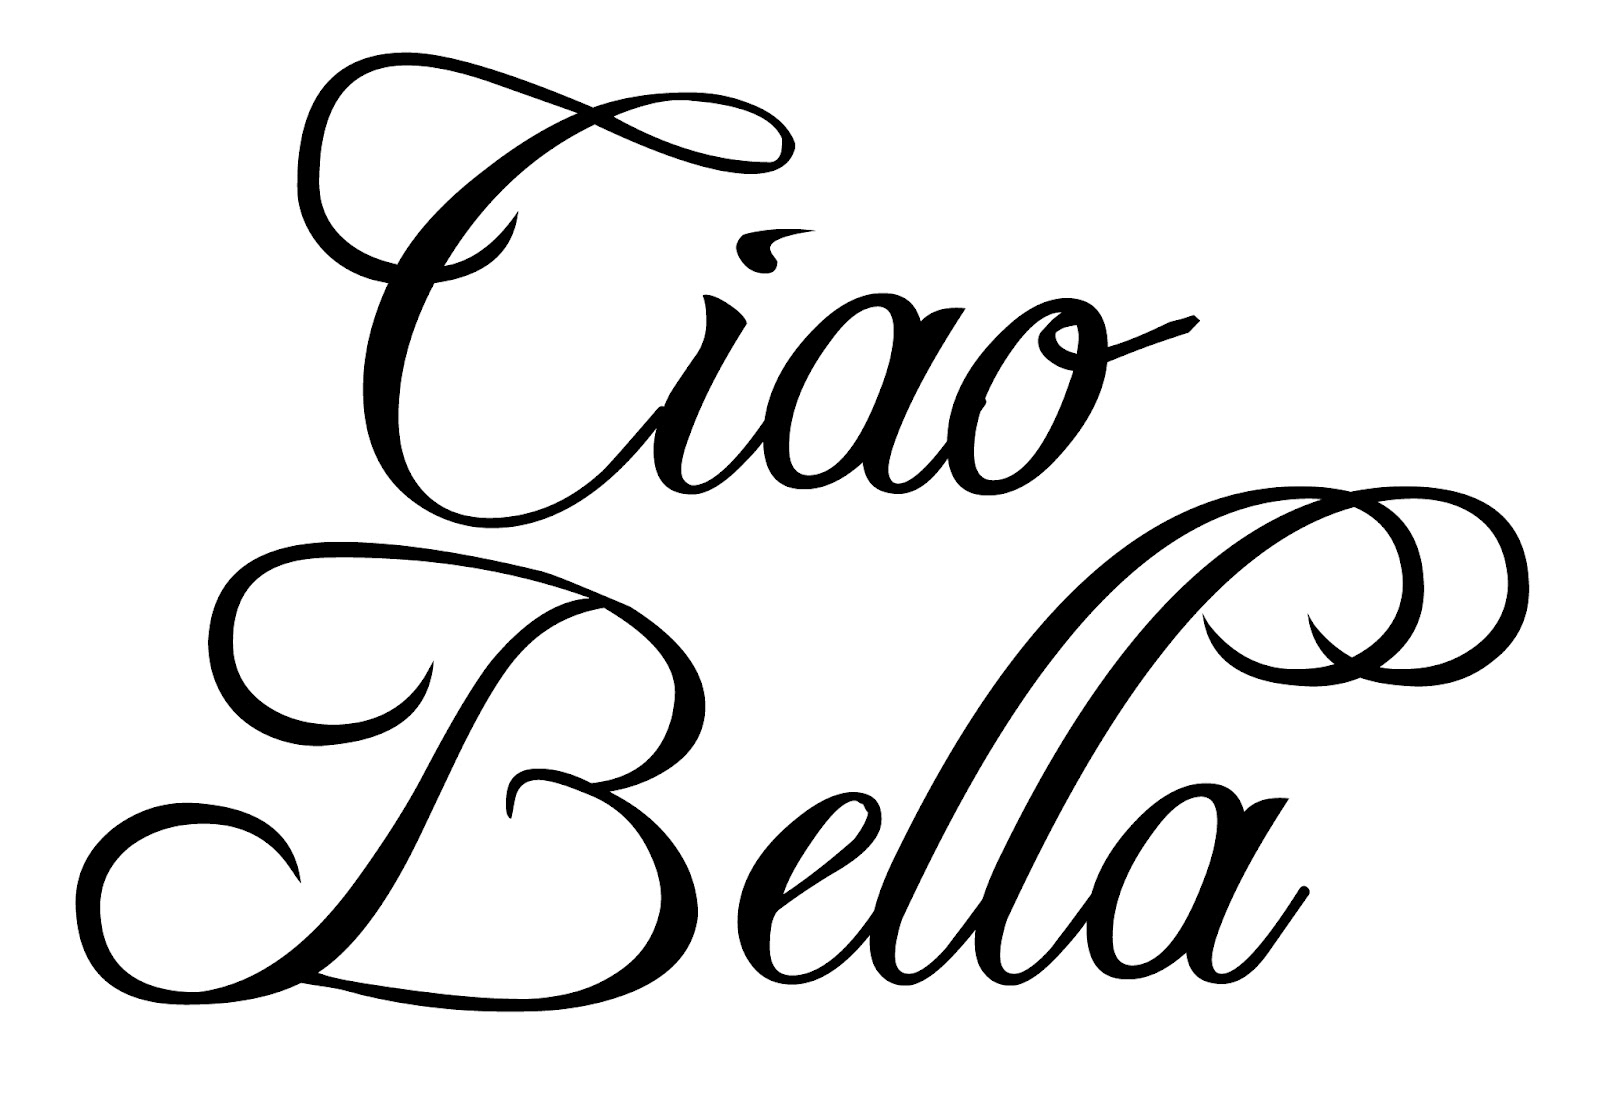 15 Italy Clip Art Free Cliparts That You Can Download To You Computer